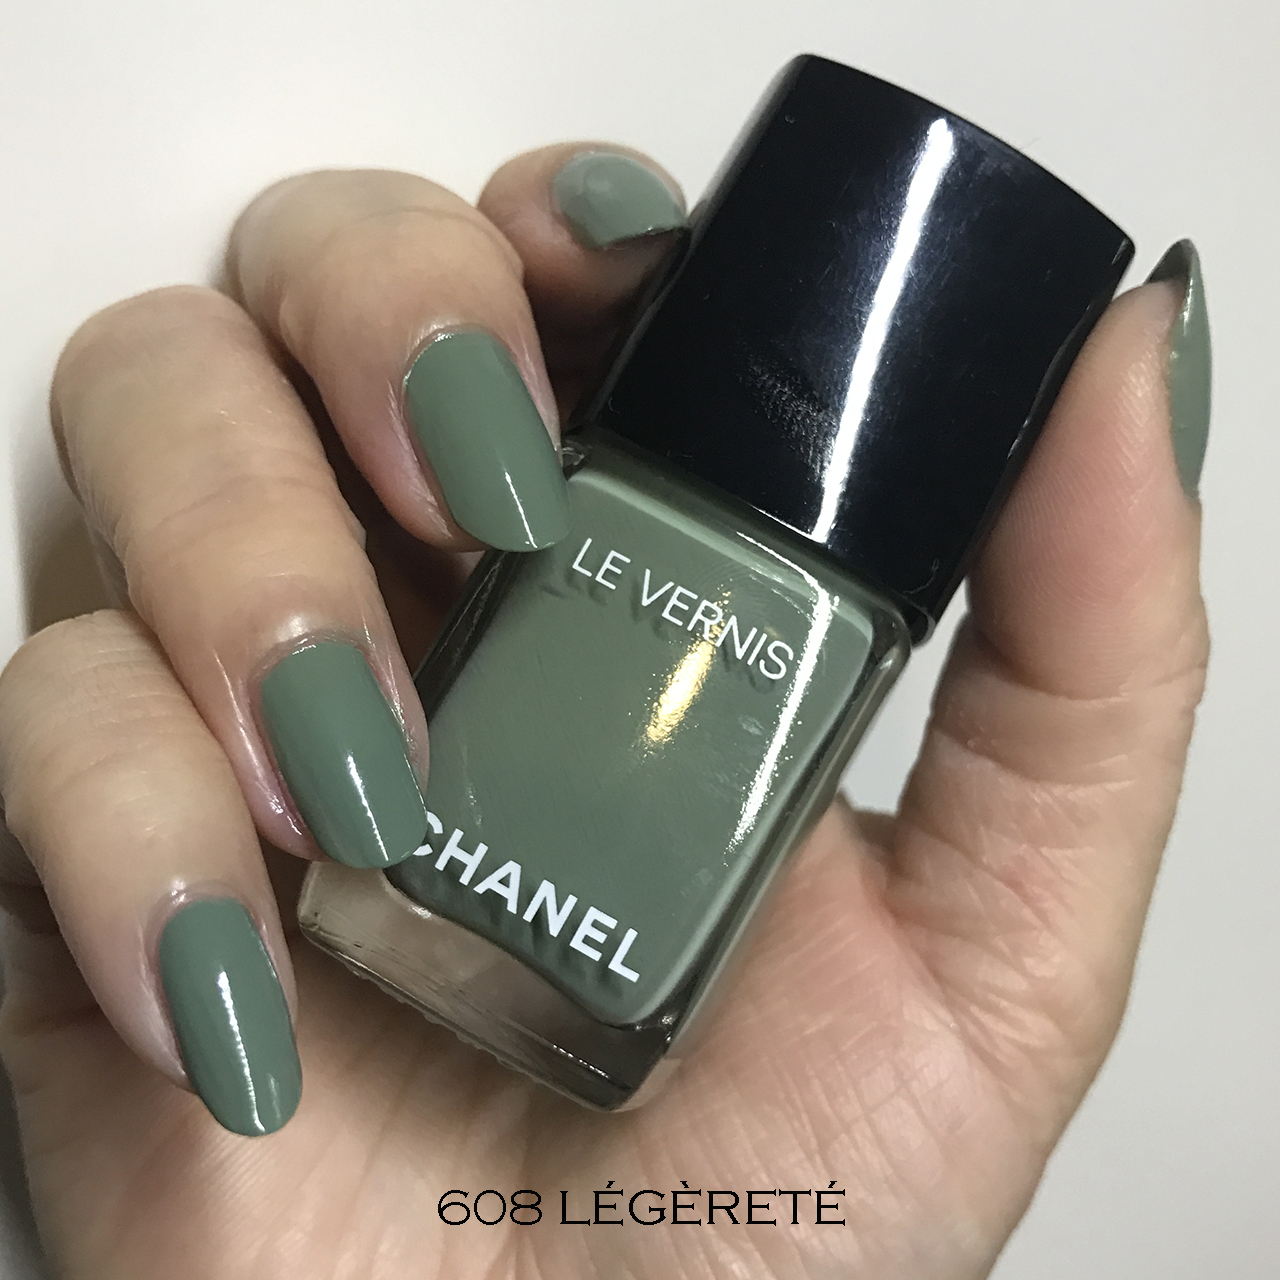 Chanel Le Vernis 608 Legerete swatch